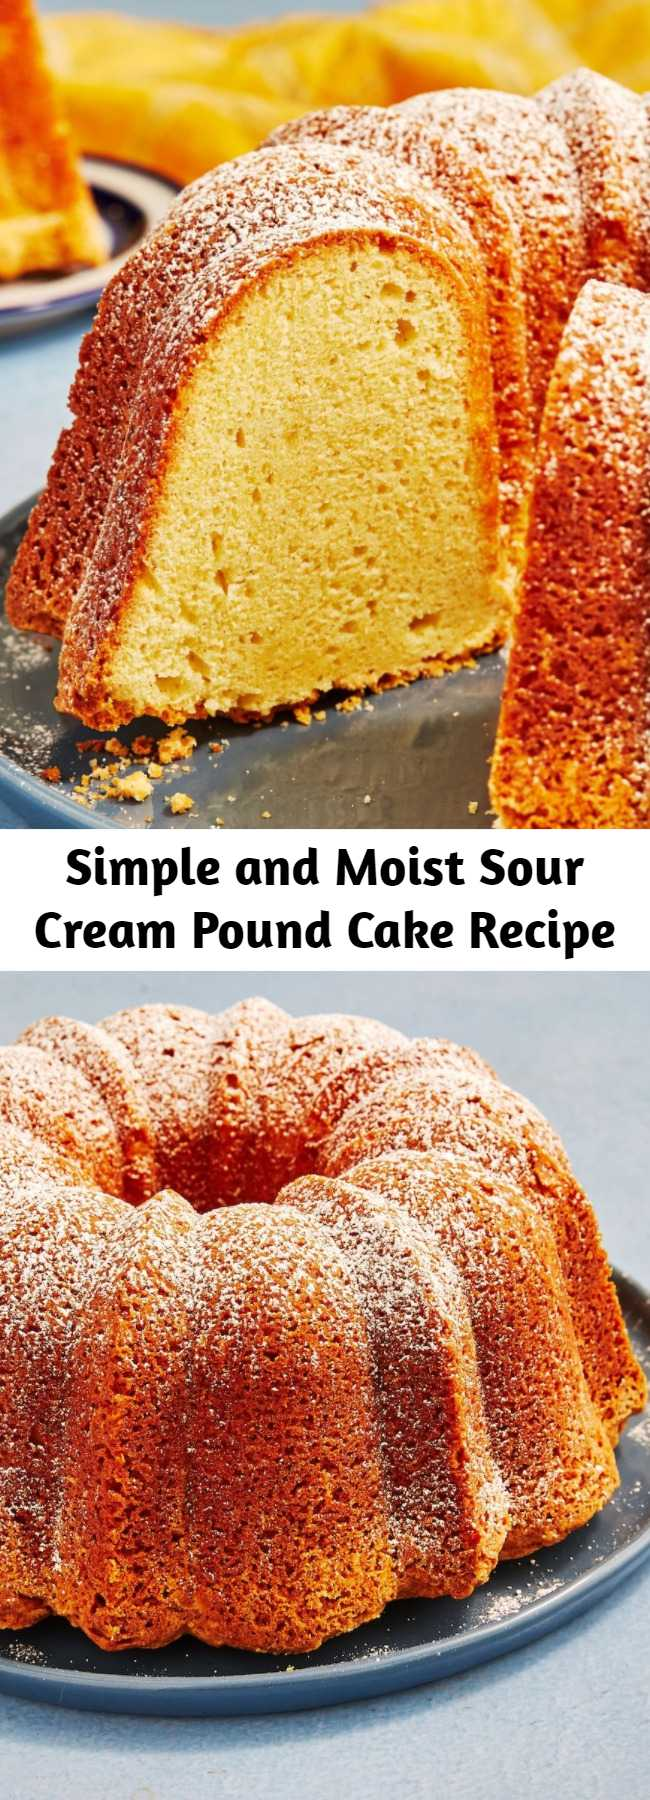 Simple and Moist Sour Cream Pound Cake Recipe - Sour Cream Pound Cake is a humble cake that's beautiful and delicious enough to be a dessert centerpiece any time of day.